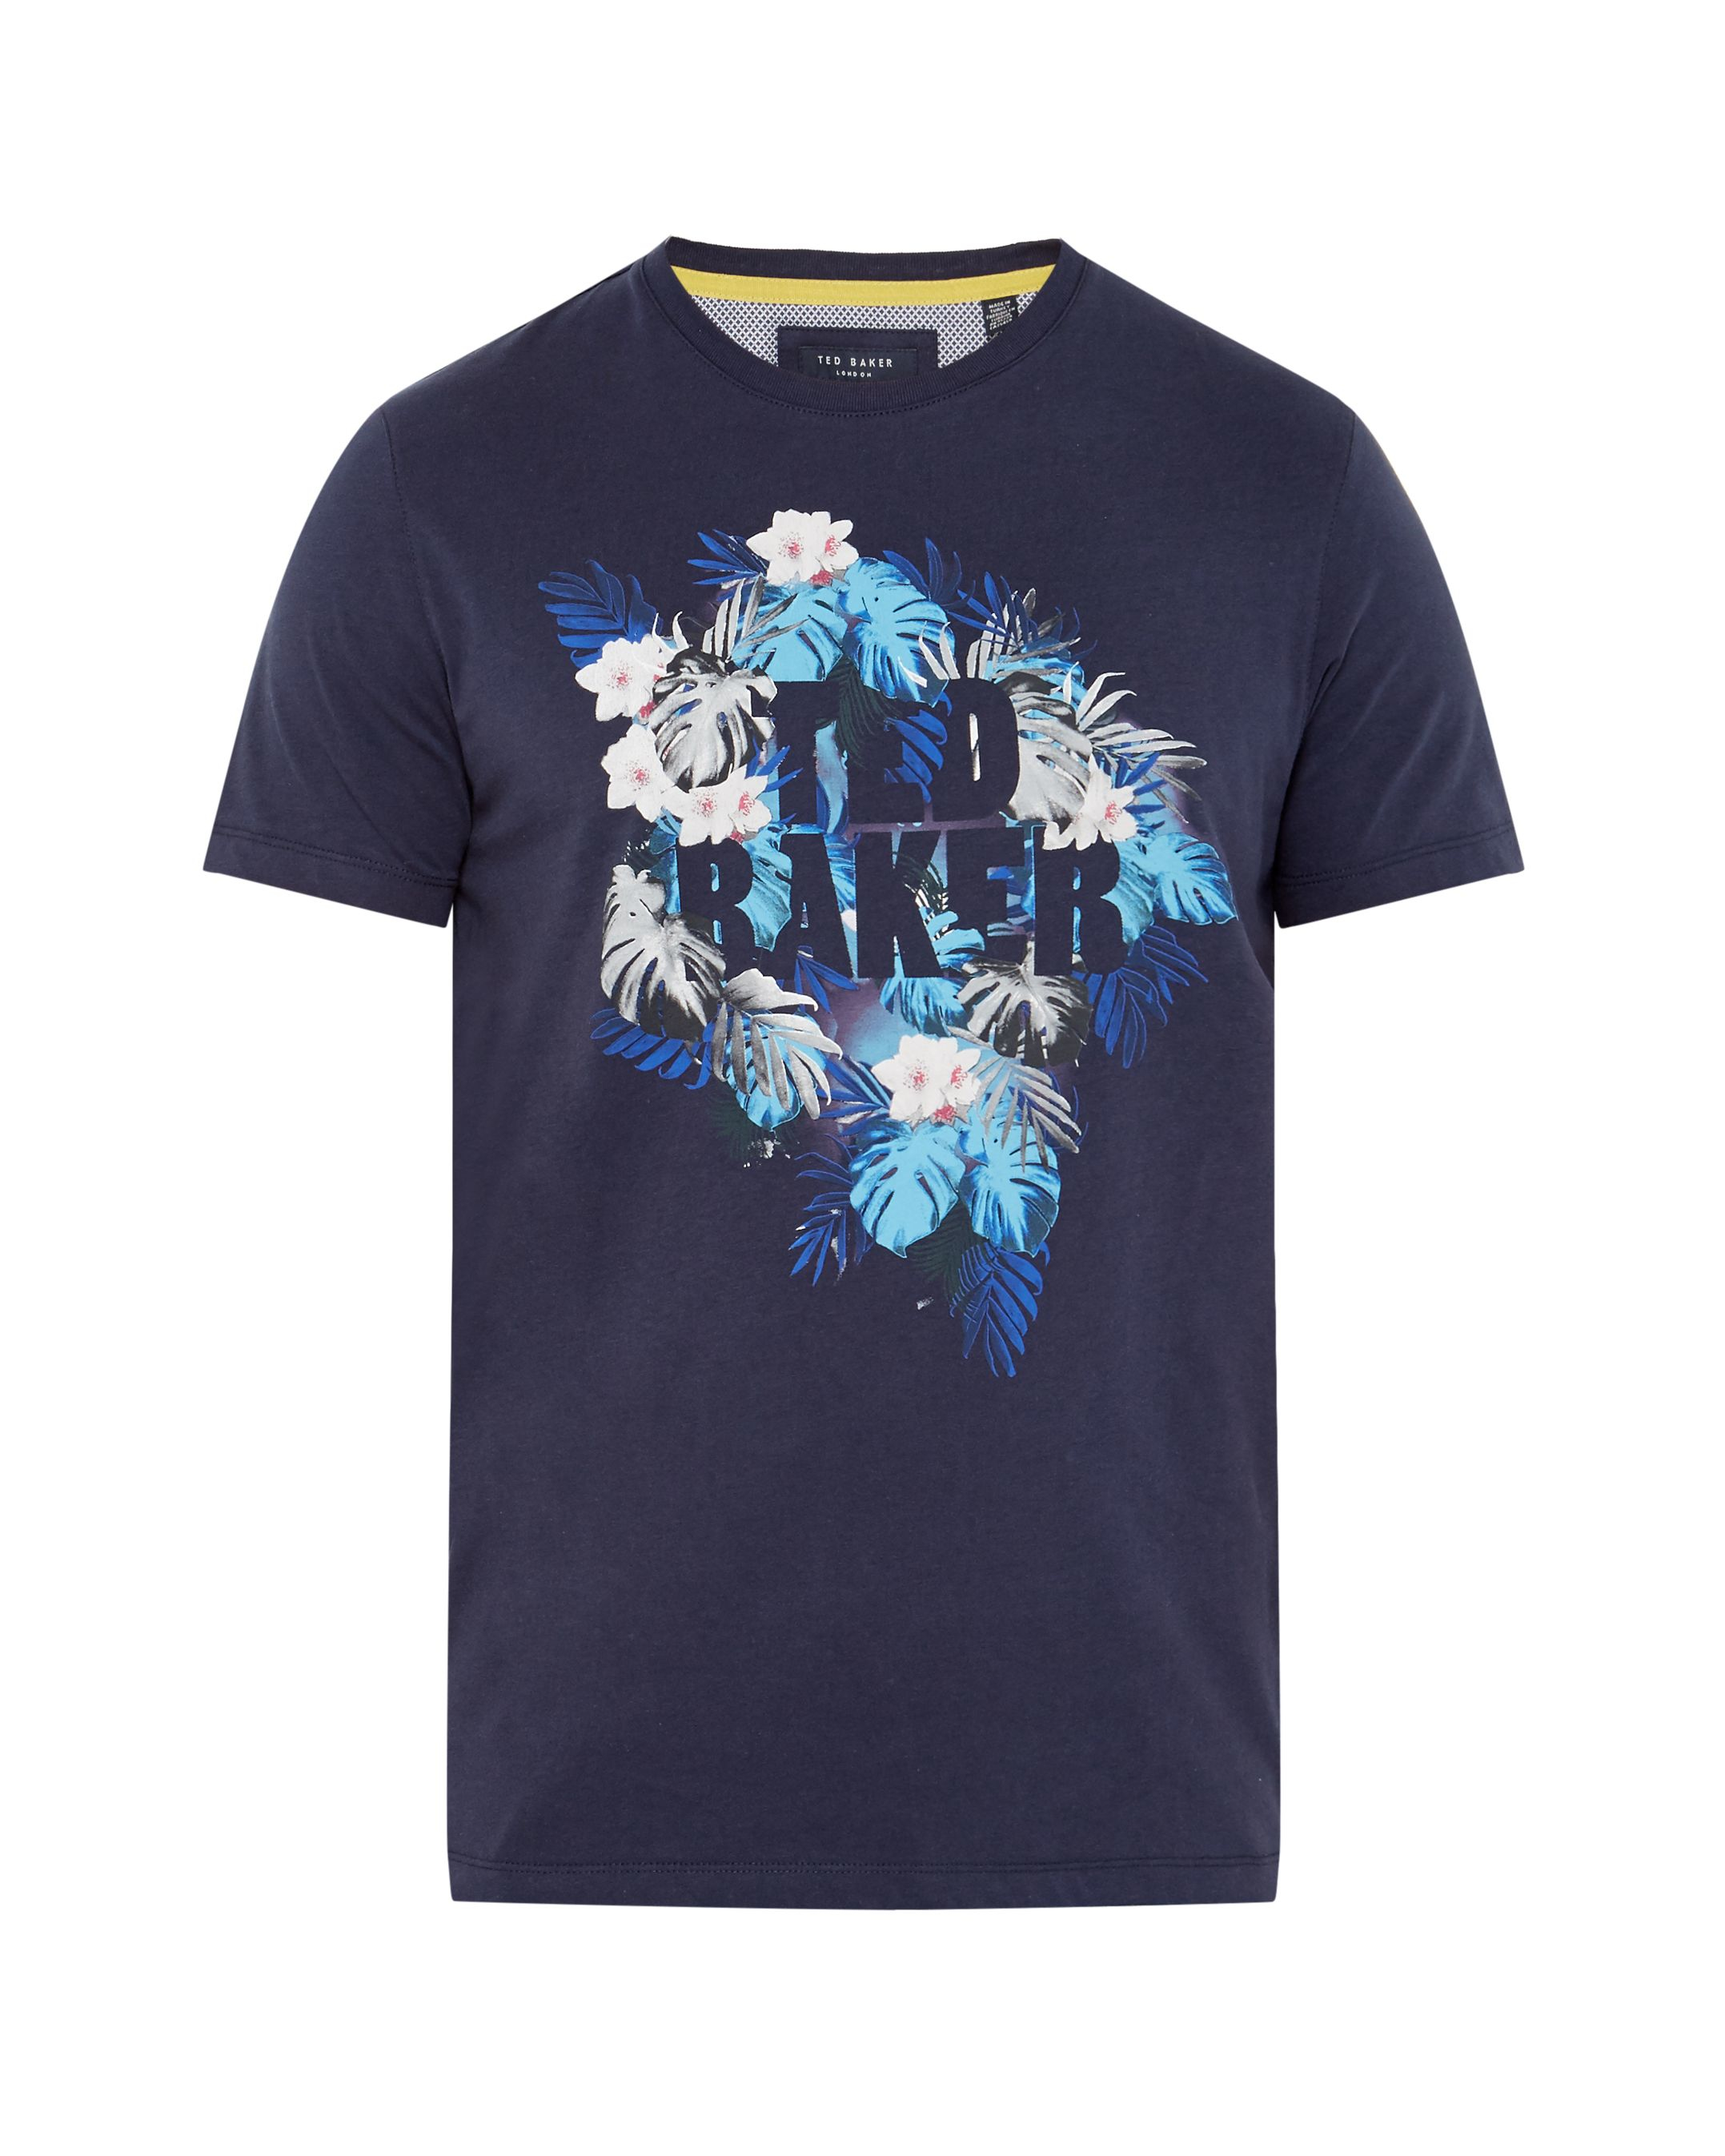 Ted baker voltay tropical graphic t shirt in blue for men for Ted baker blue shirt